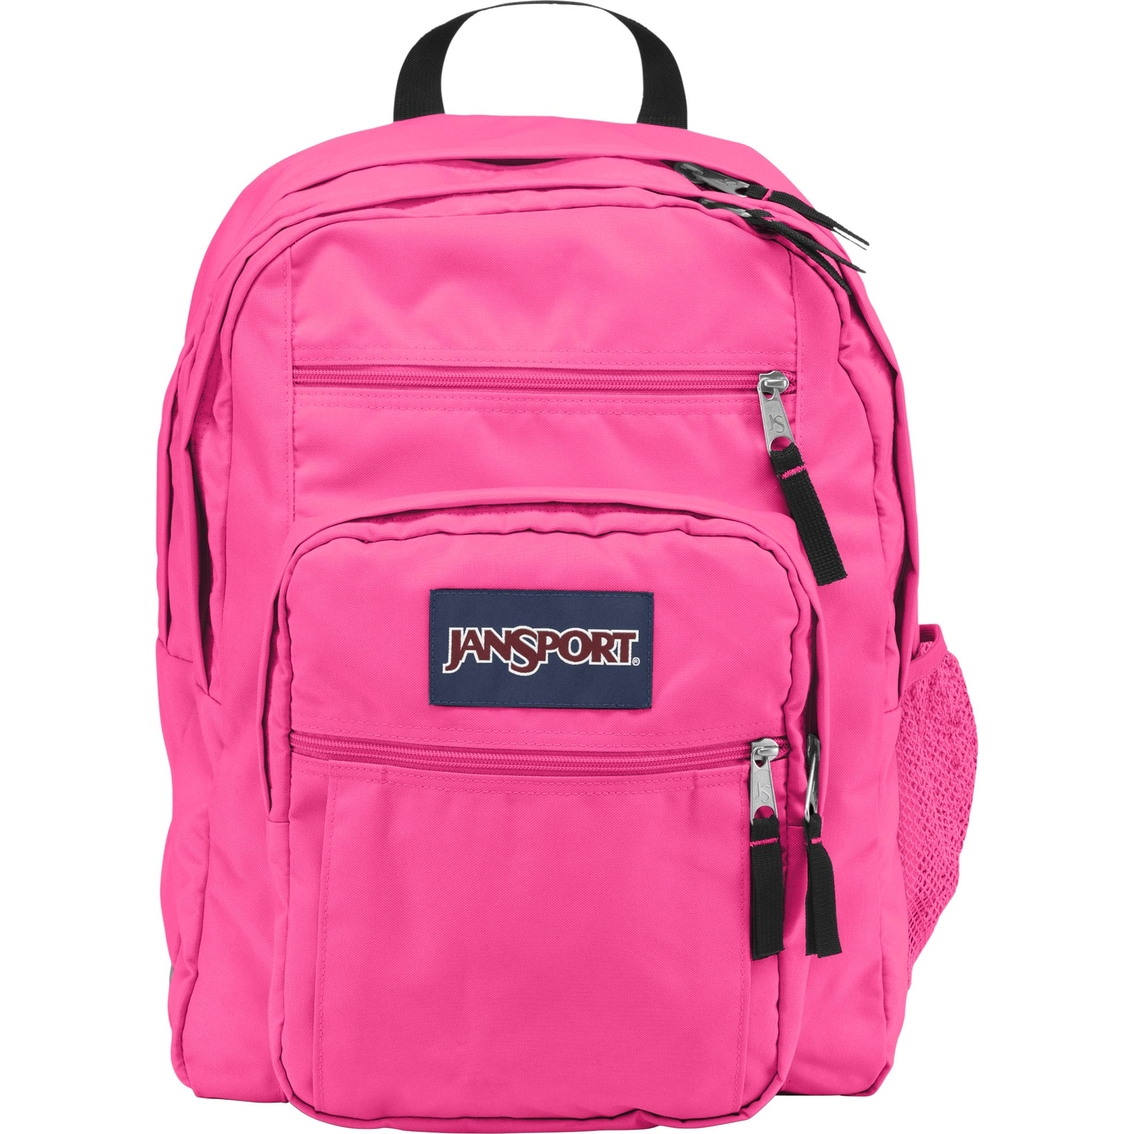 Jansport Clear Backpacks yZmDmp16